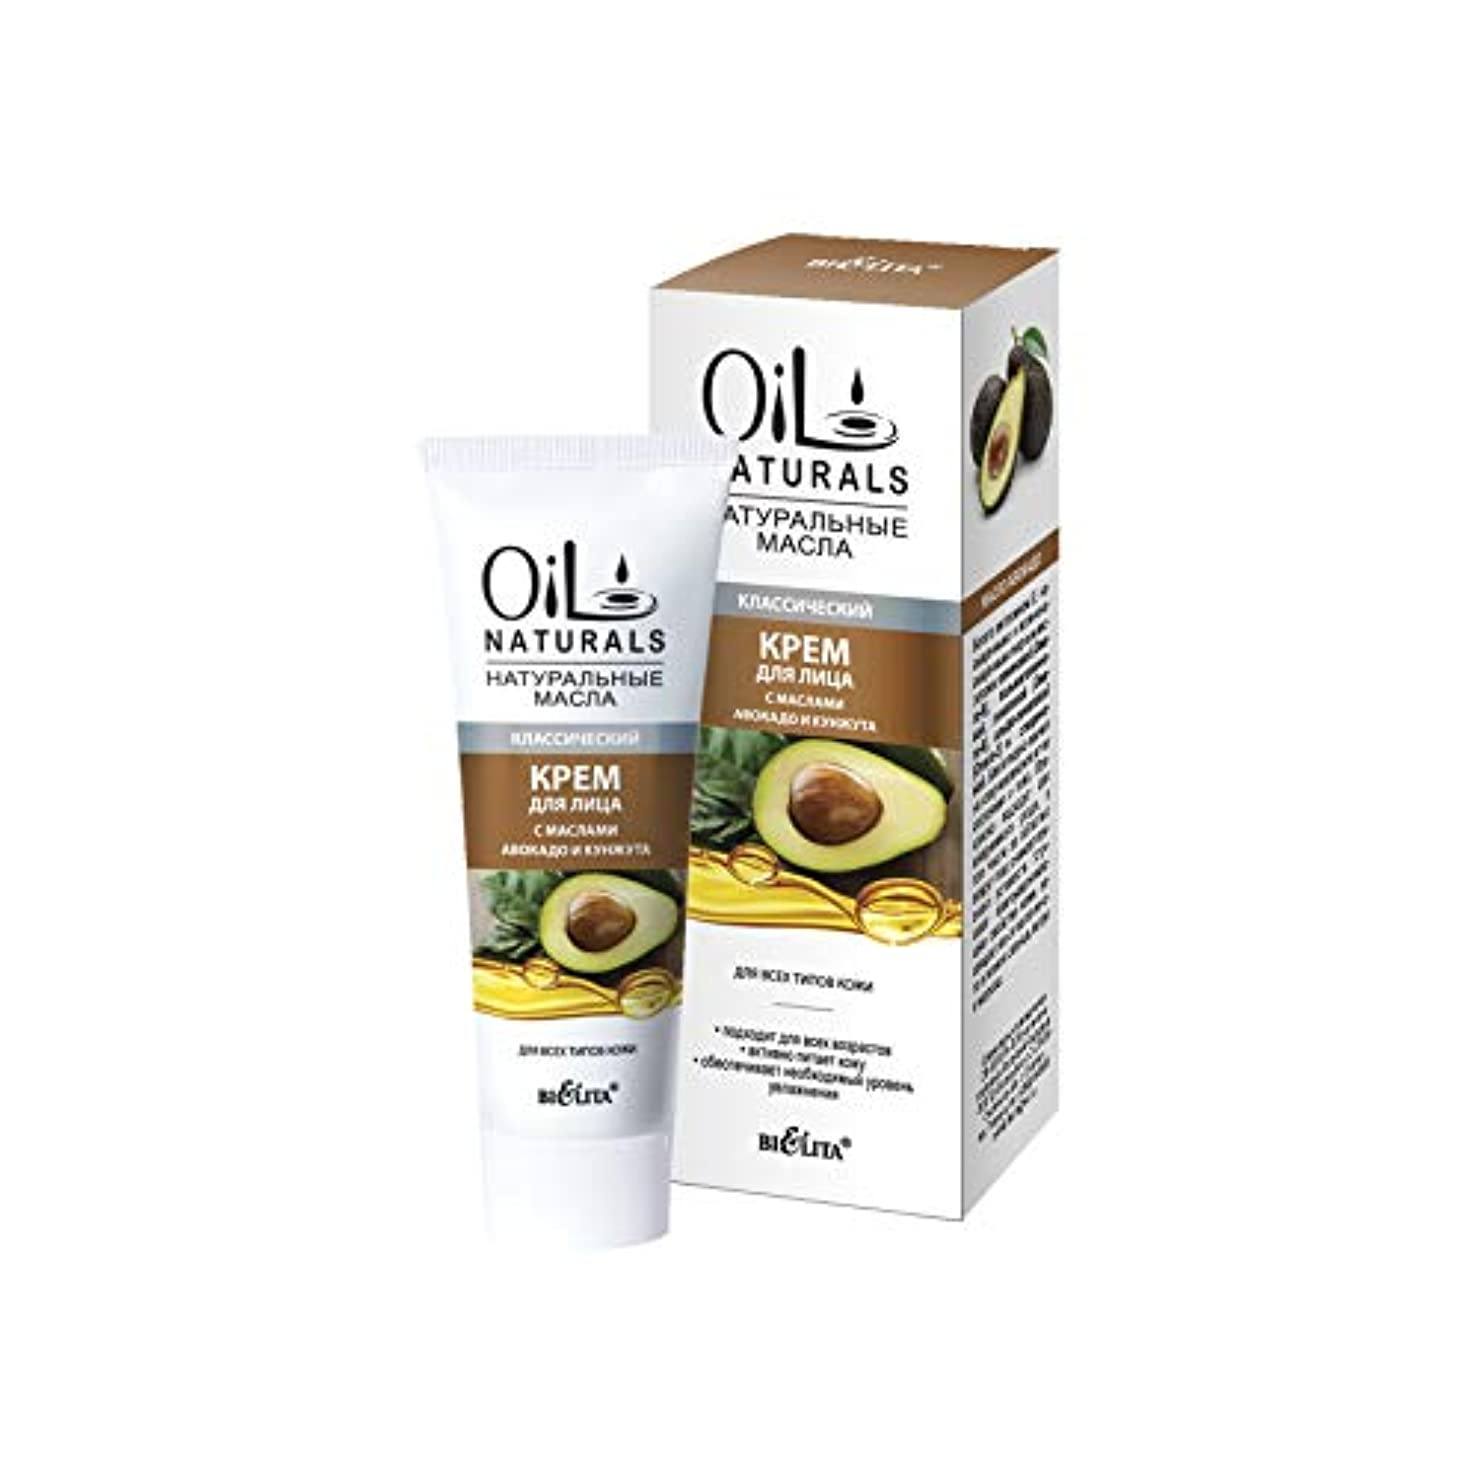 商人エコー苦情文句Bielita & Vitex |Oil Naturals Line | Classic Moisturizing Face Cream, for All Skin Types, 50 ml | Avocado Oil,...